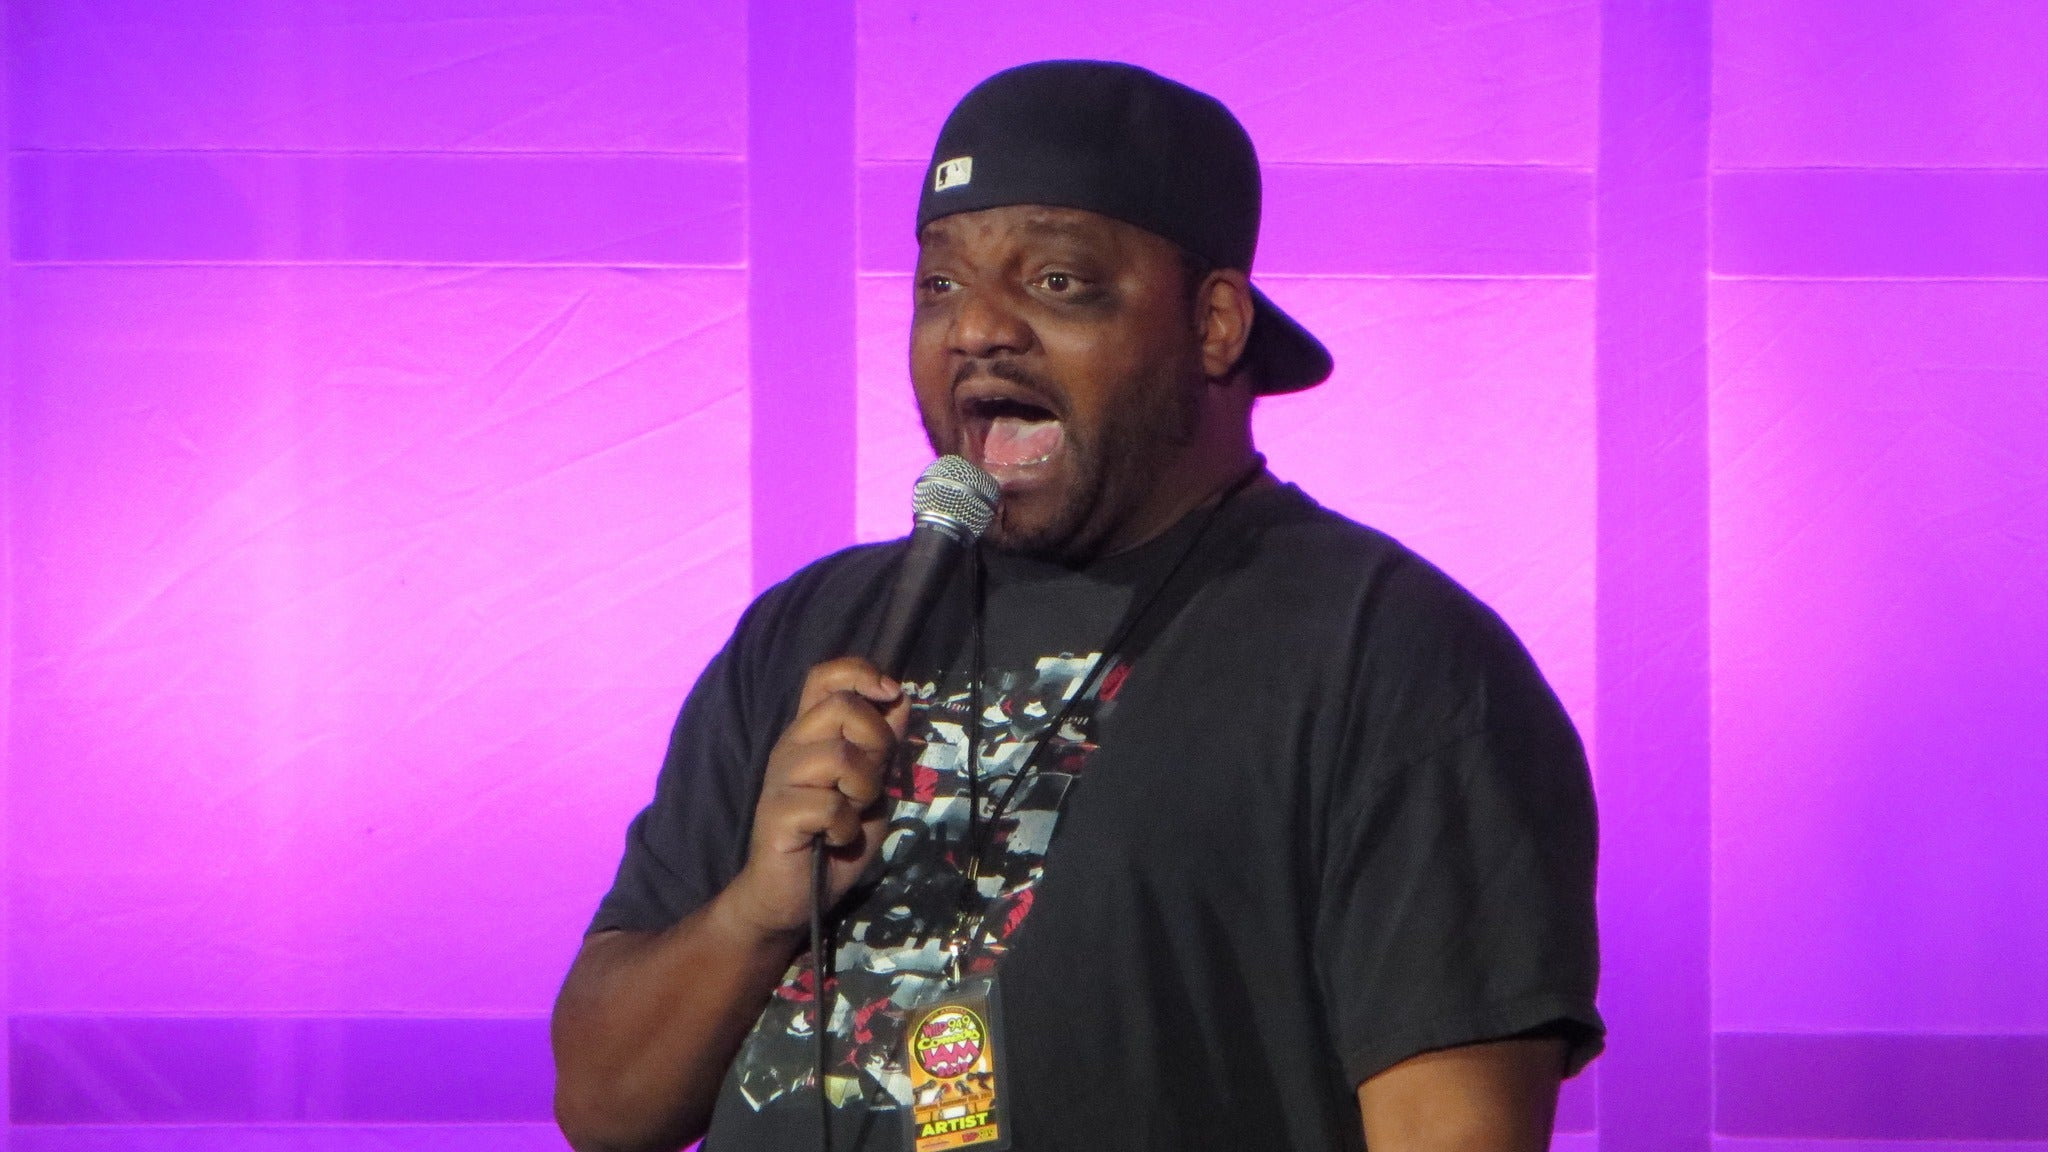 Aries Spears at Irvine Improv